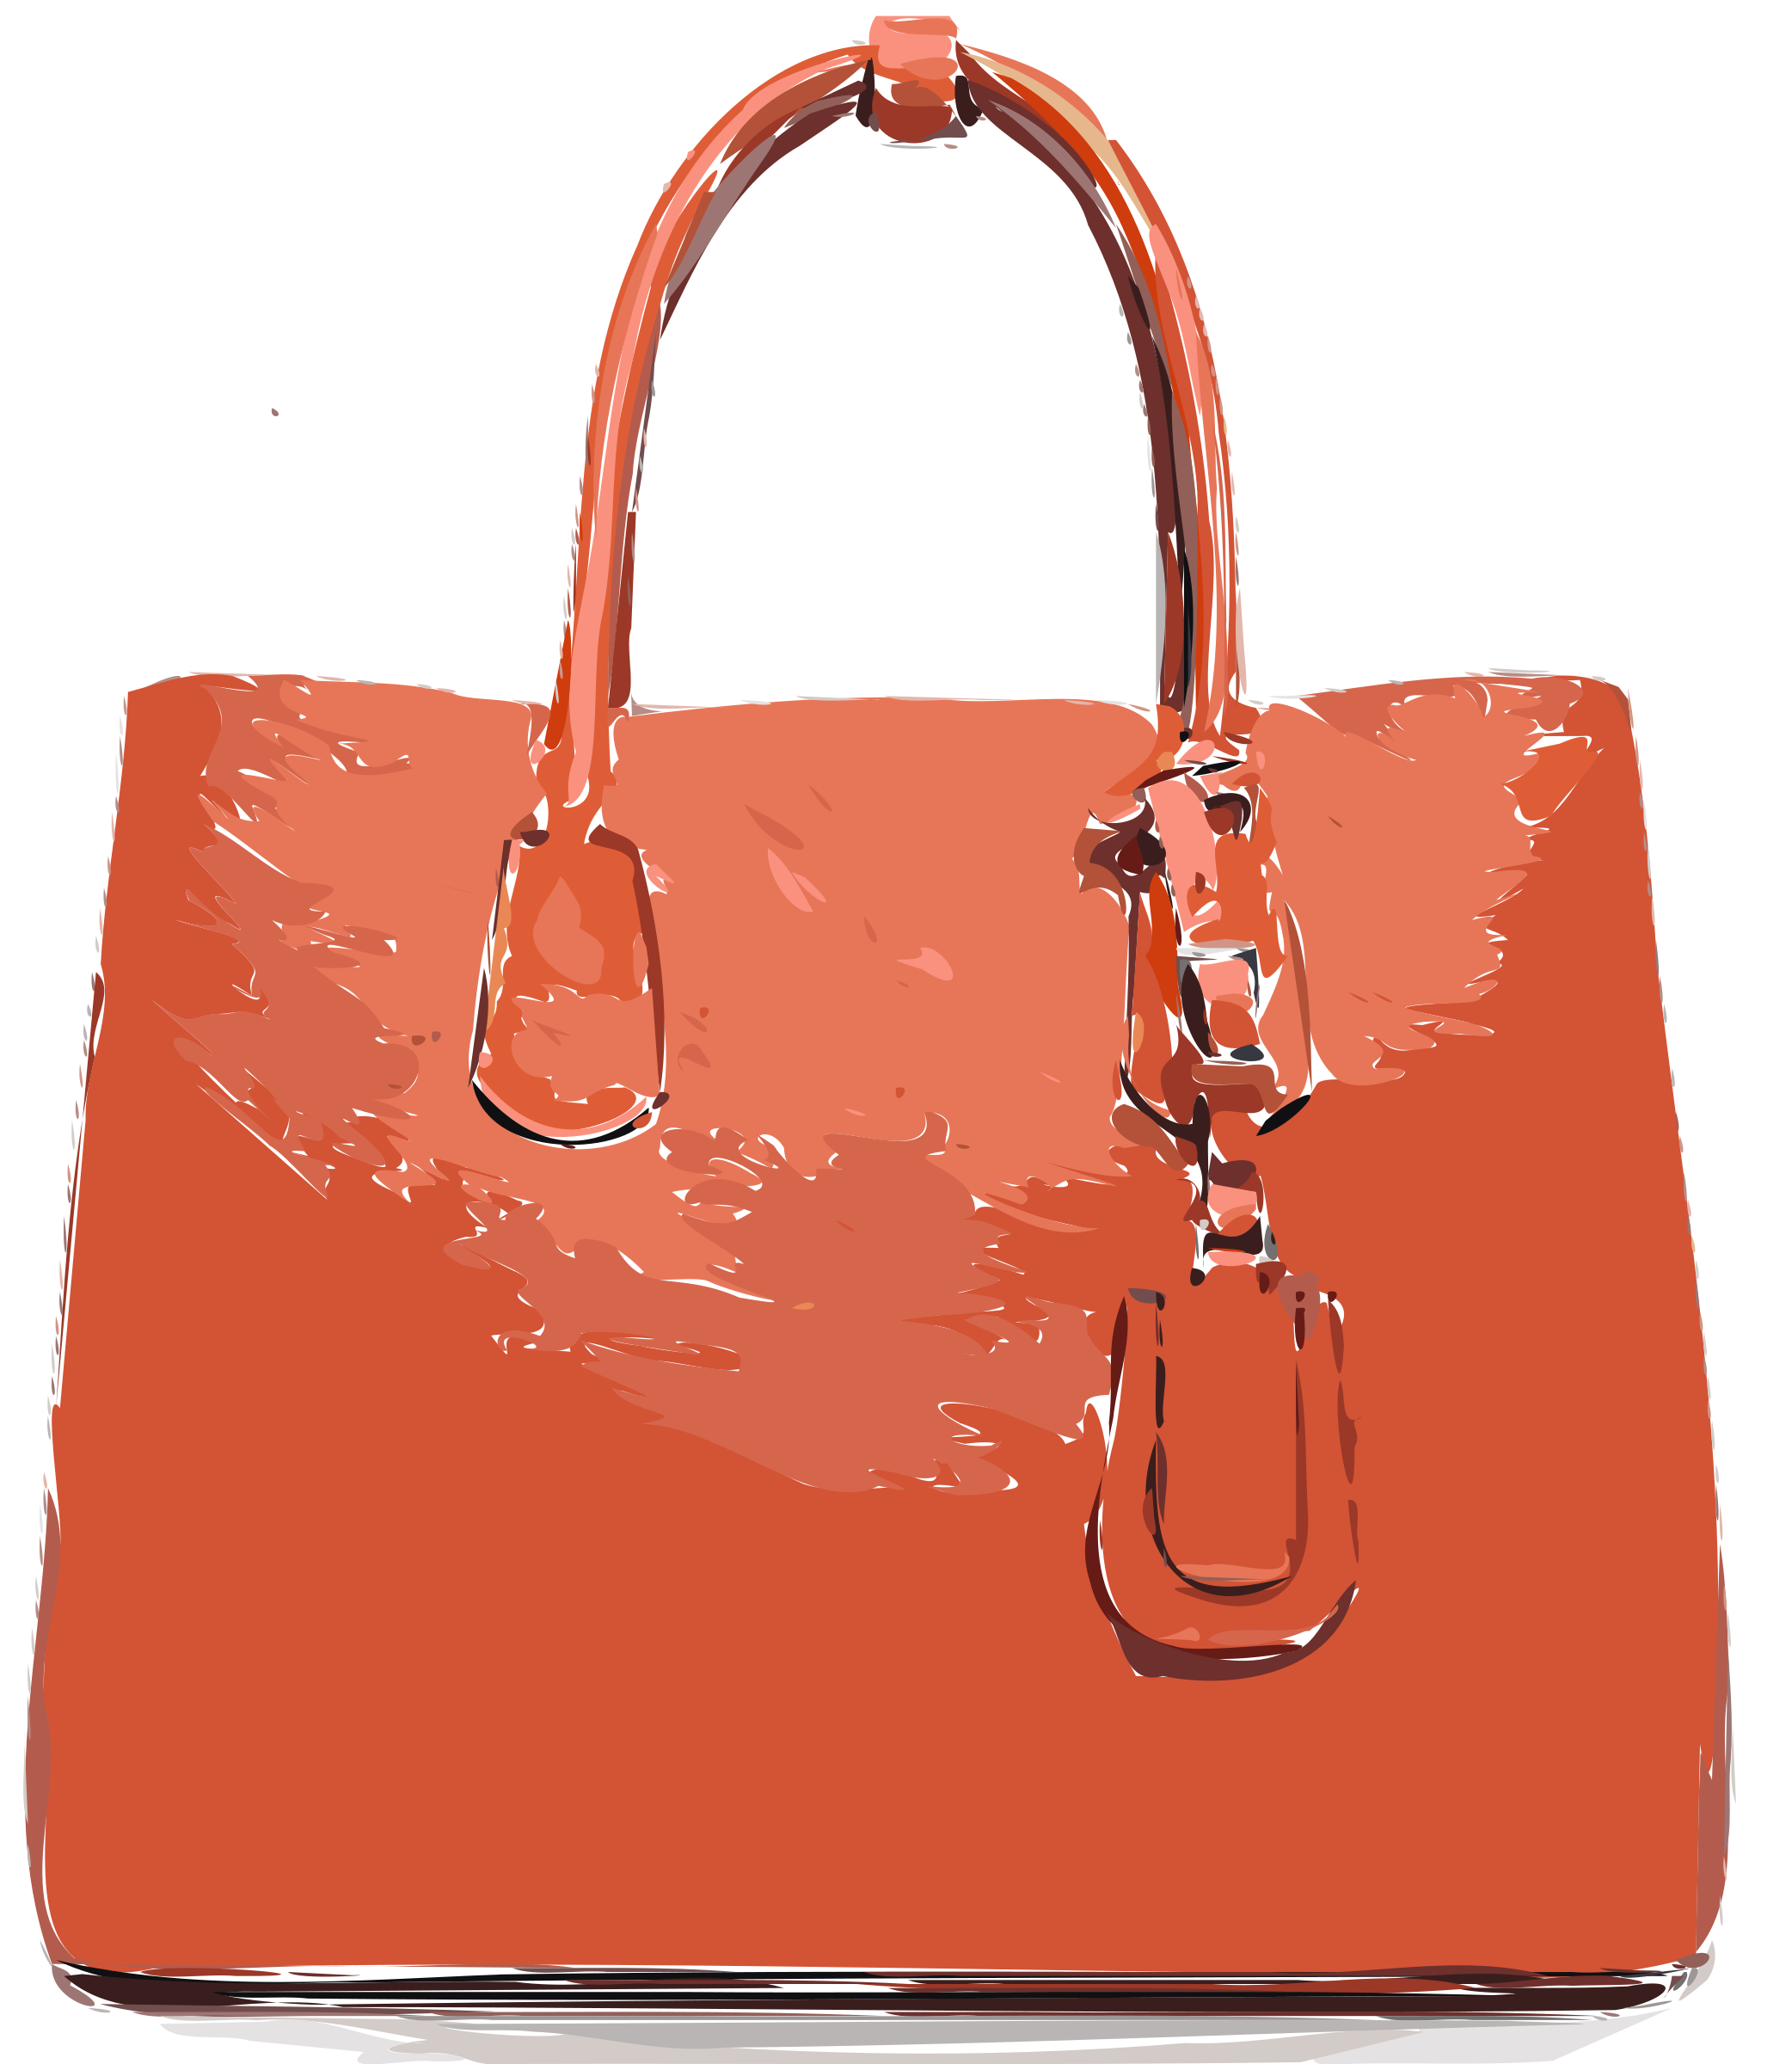 Orange Flat Leather Bag by rejon